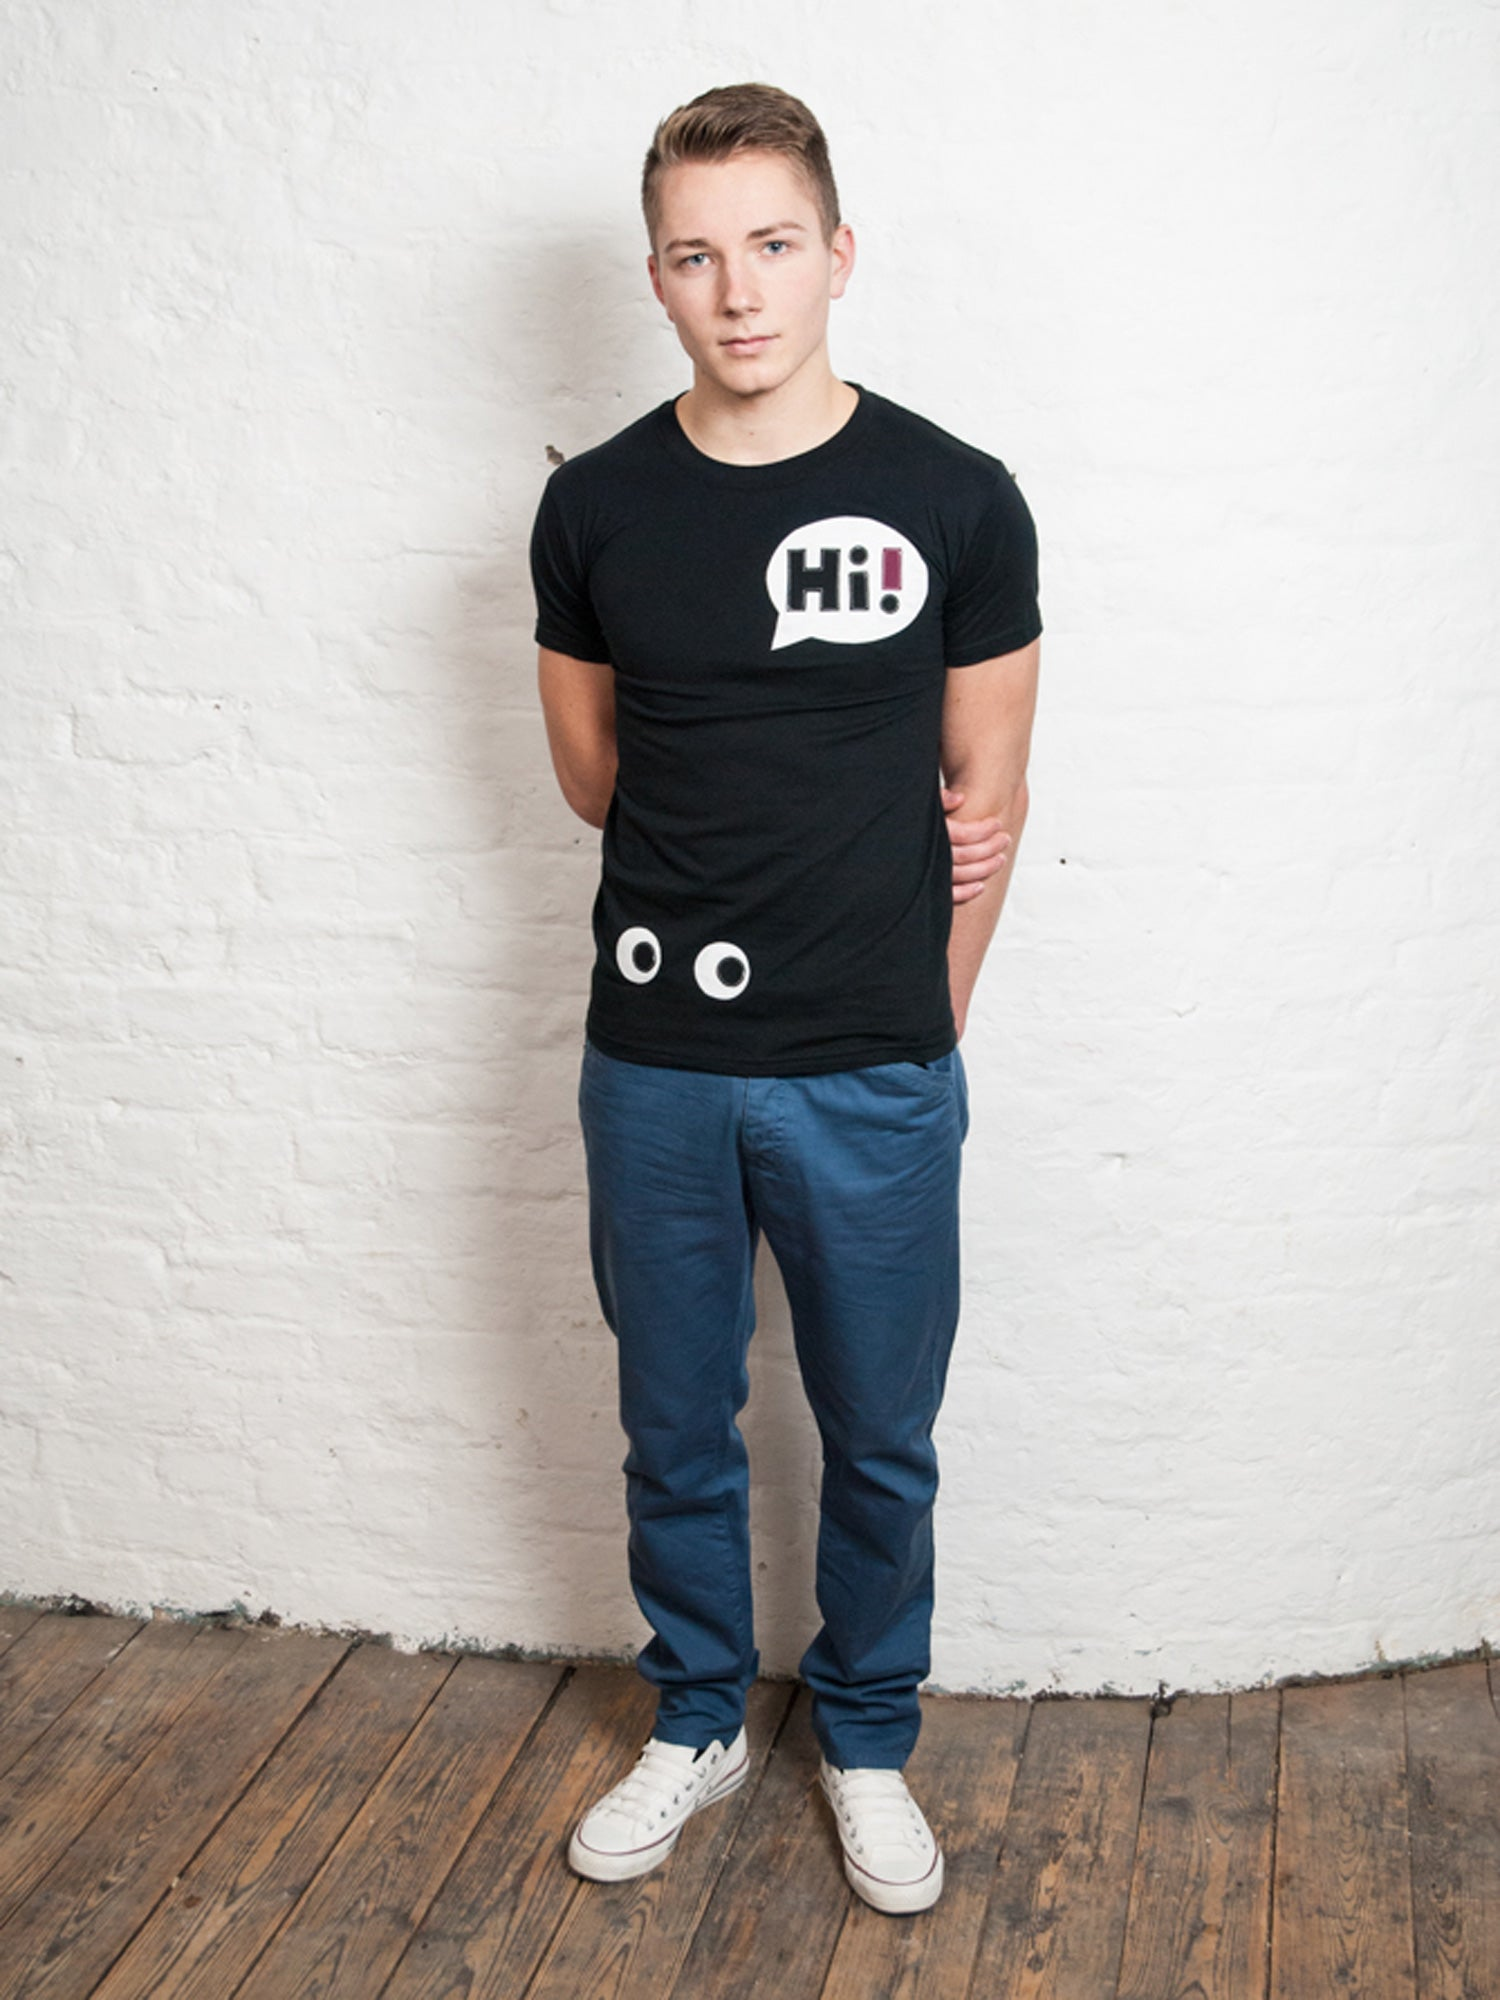 Men's Black Hi T Shirt by Not For Ponies